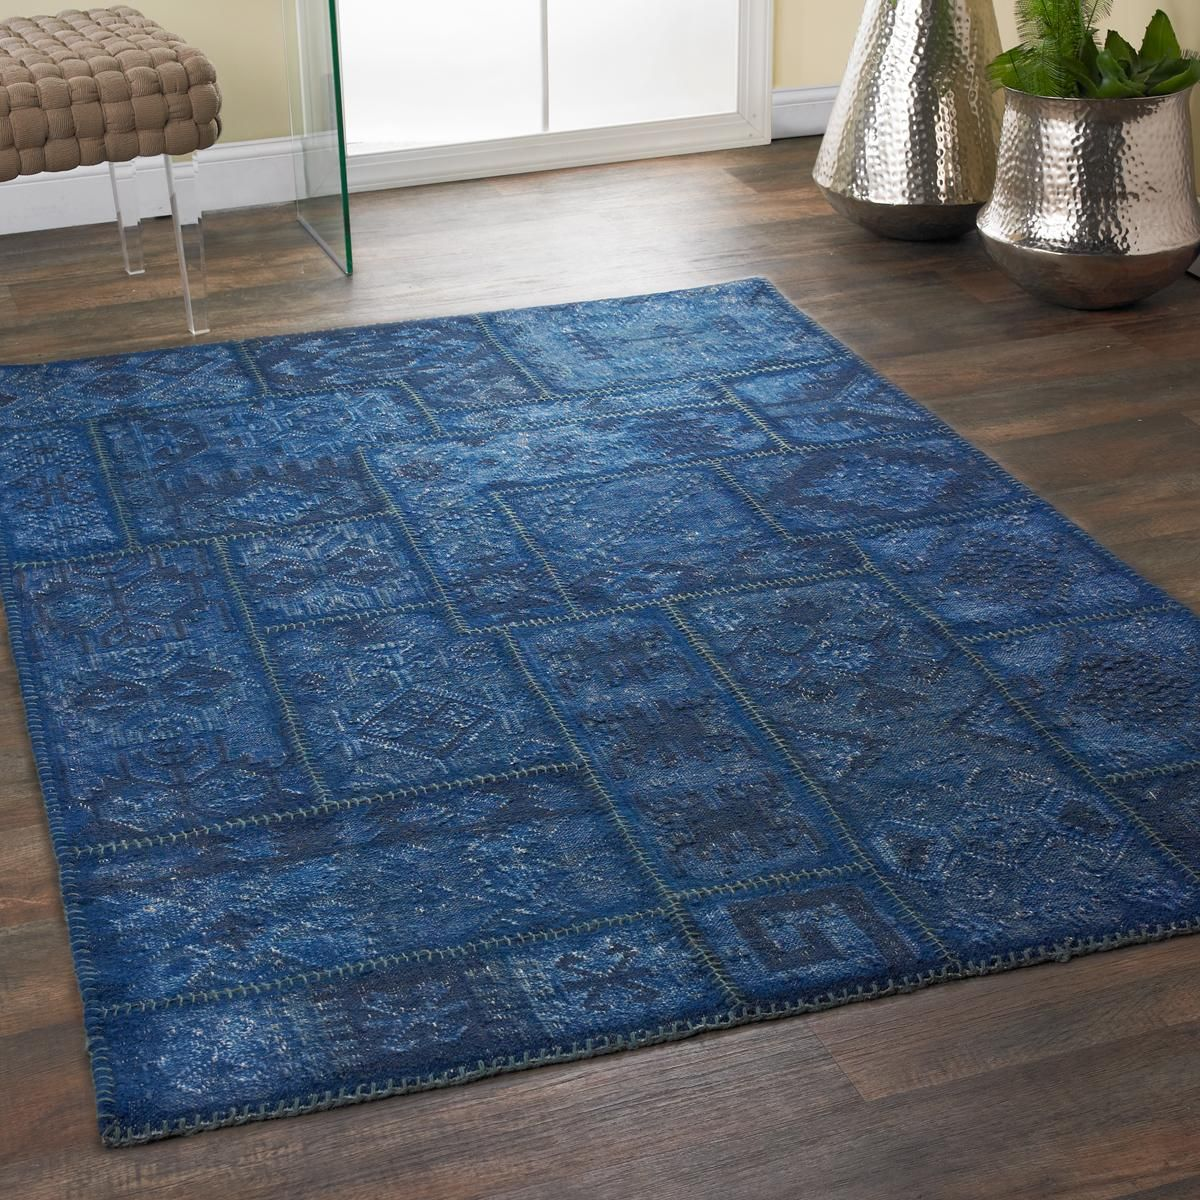 Patchwork Kilim Overdyed Wash Rug Sections Of Flatweave